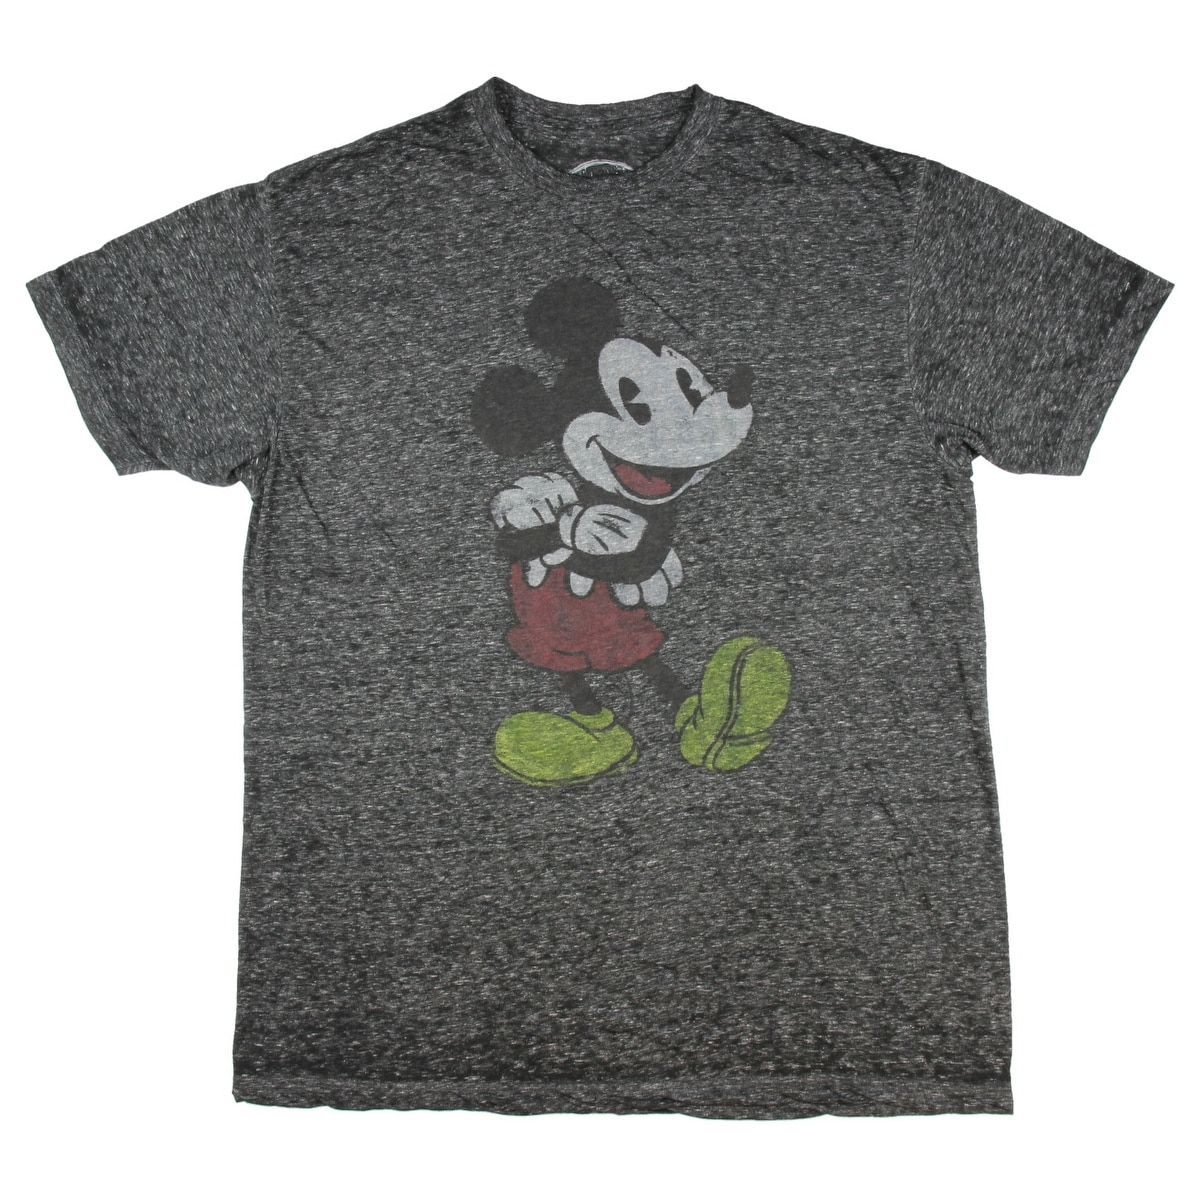 a7ceb9ef98f Shop Disney Mickey Mouse Classic Distressed Graphic T-Shirt - Free Shipping  On Orders Over  45 - Overstock - 17169269